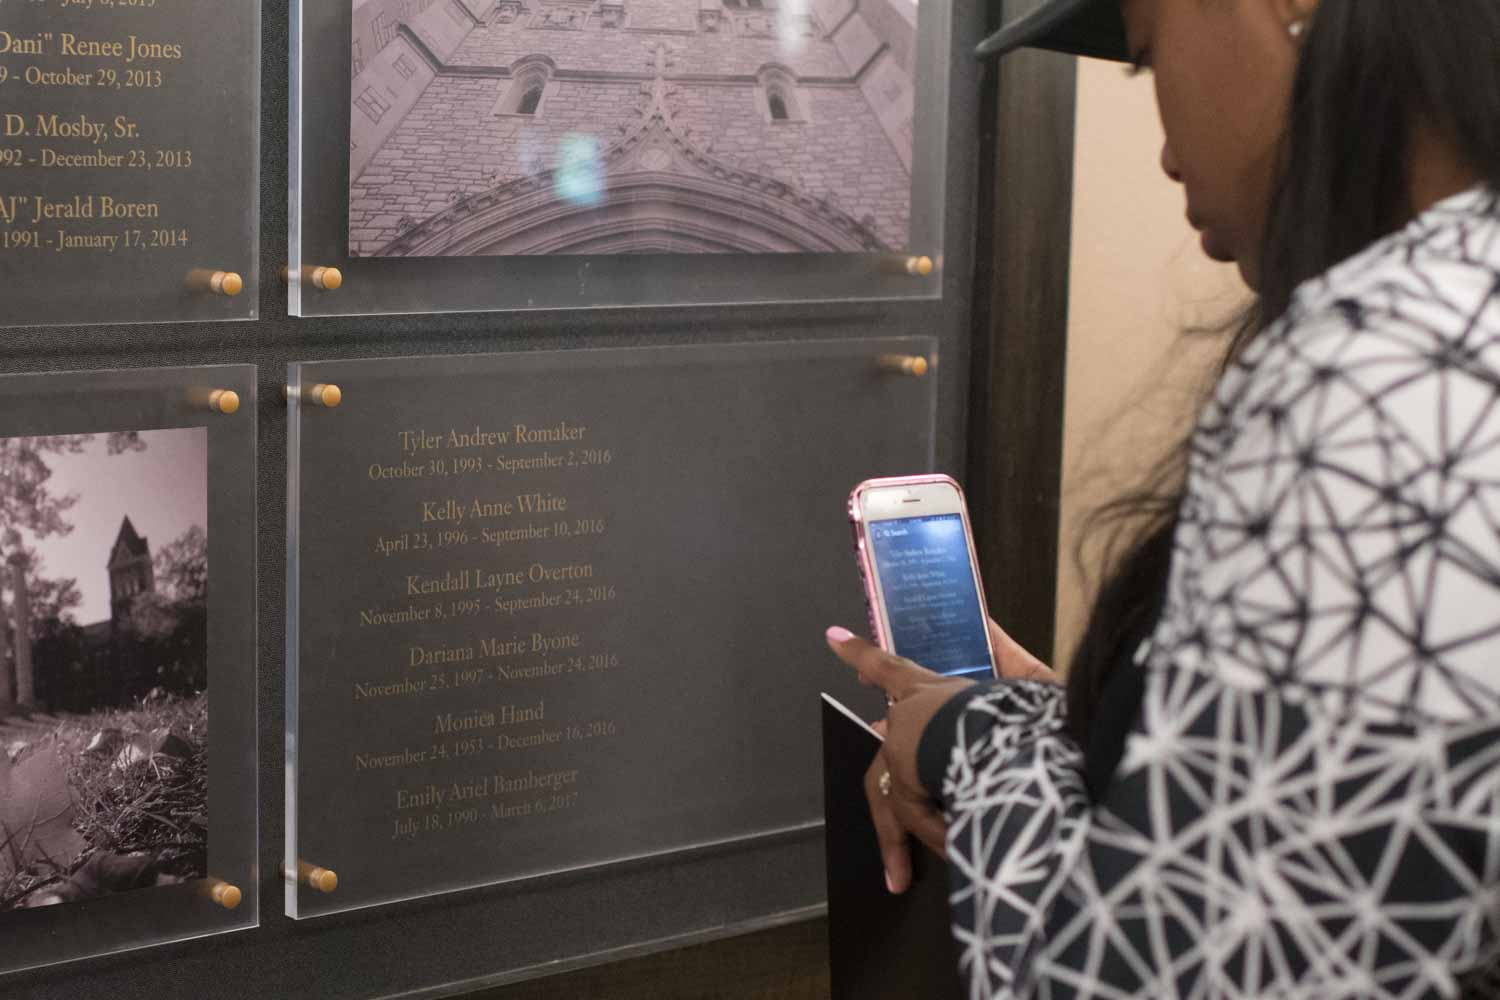 Raven Smith takes a picture with her cell phone of Dariana Byone's name, engraved on a plaque inside of Memorial Union, along with other students who have passed away.